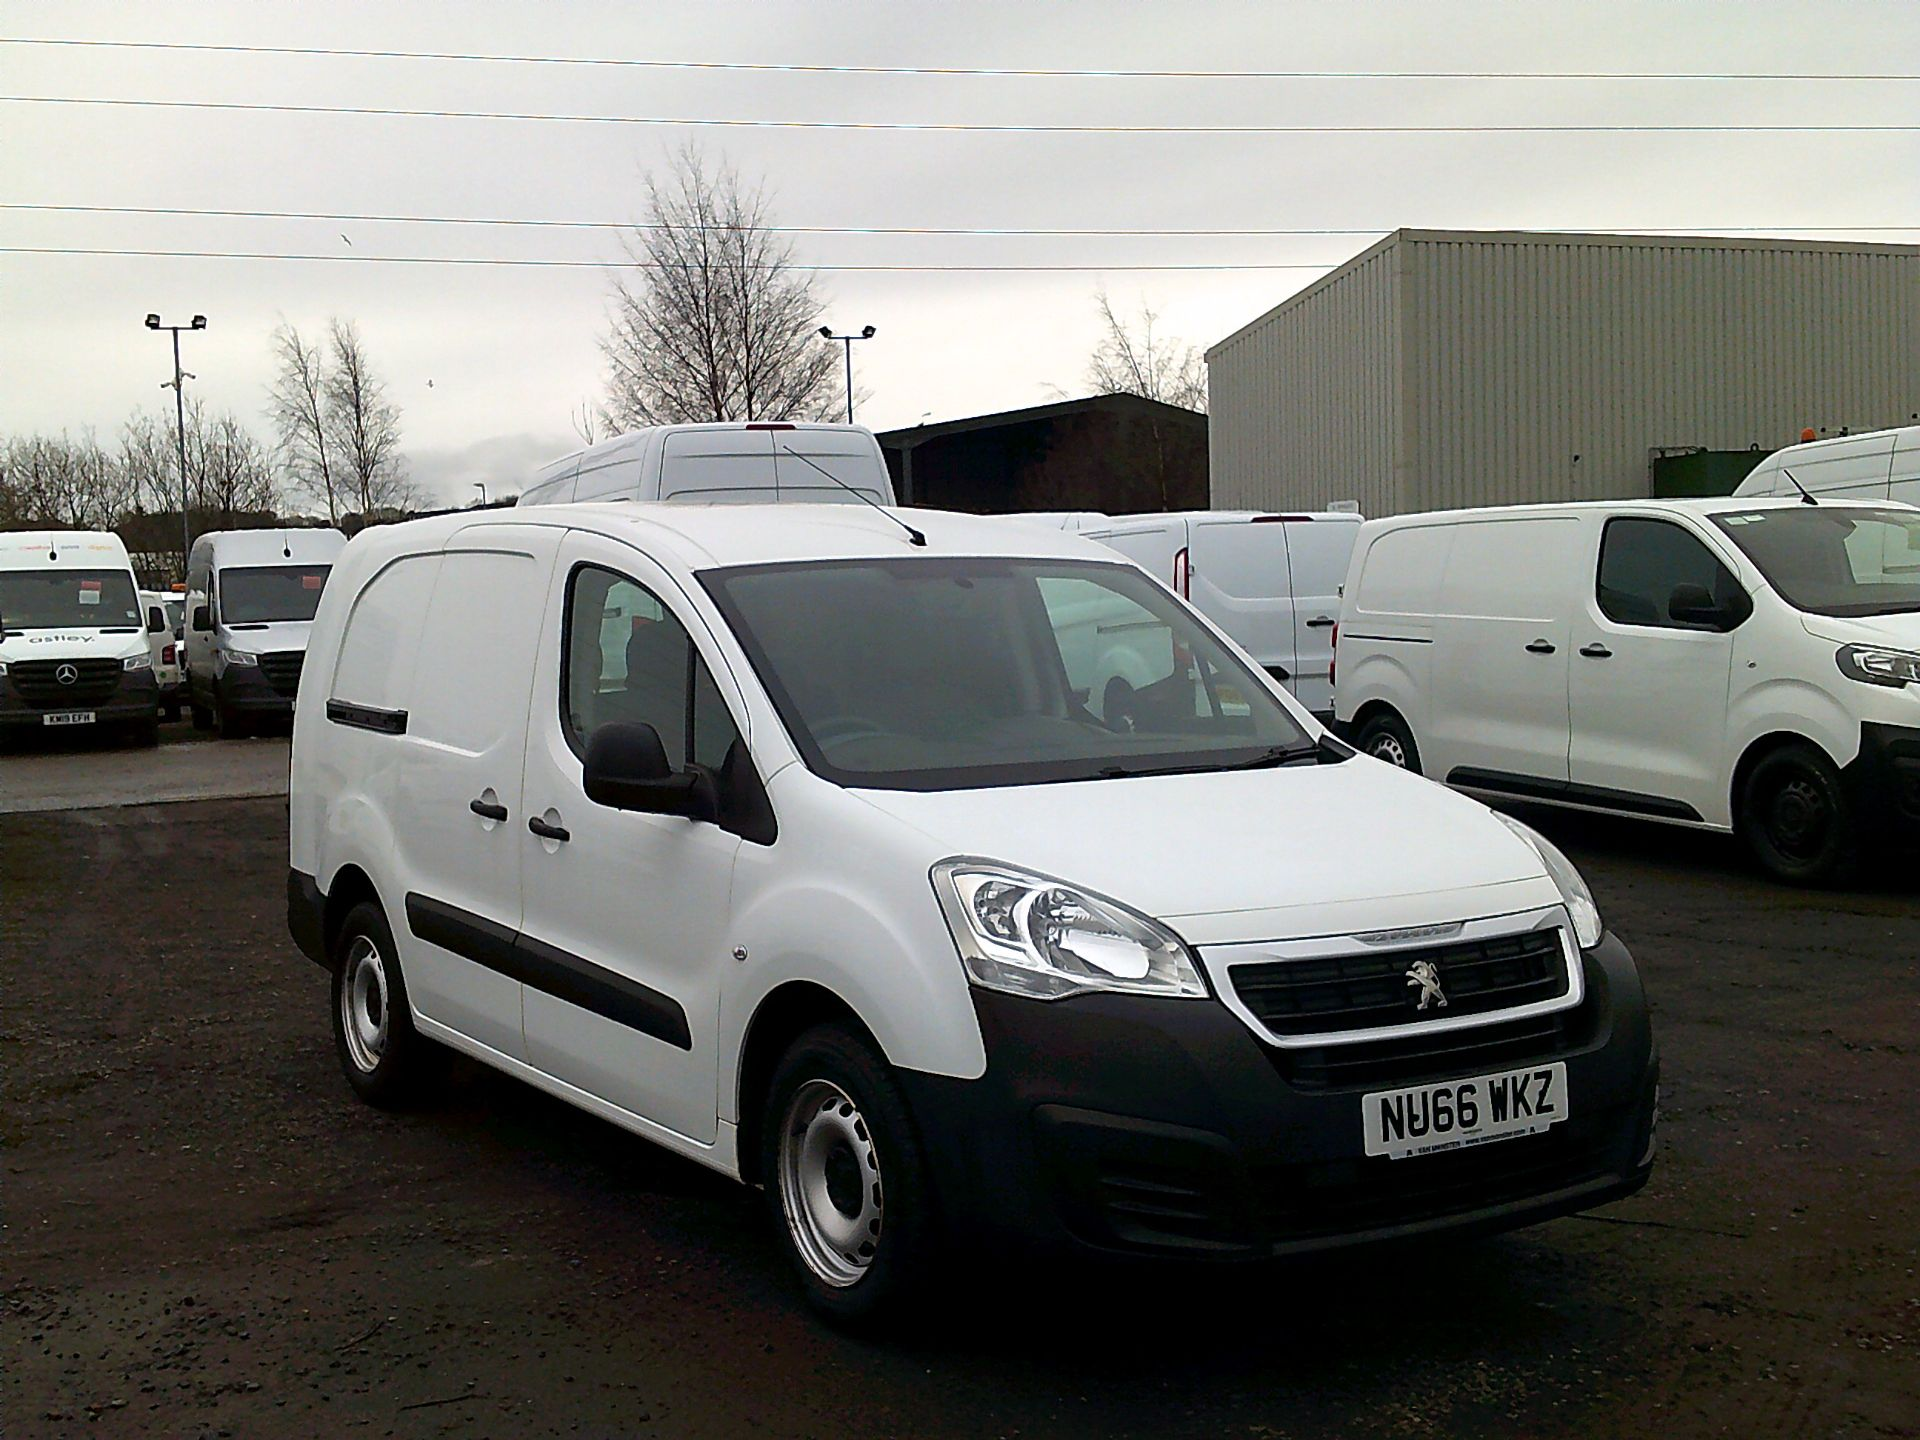 2016 Peugeot Partner L2 715 S 1.6 BLUEHDI 100 CREW VAN EURO 6 *SPEED RESTRICTED TO 56MPH* (NU66WKZ)